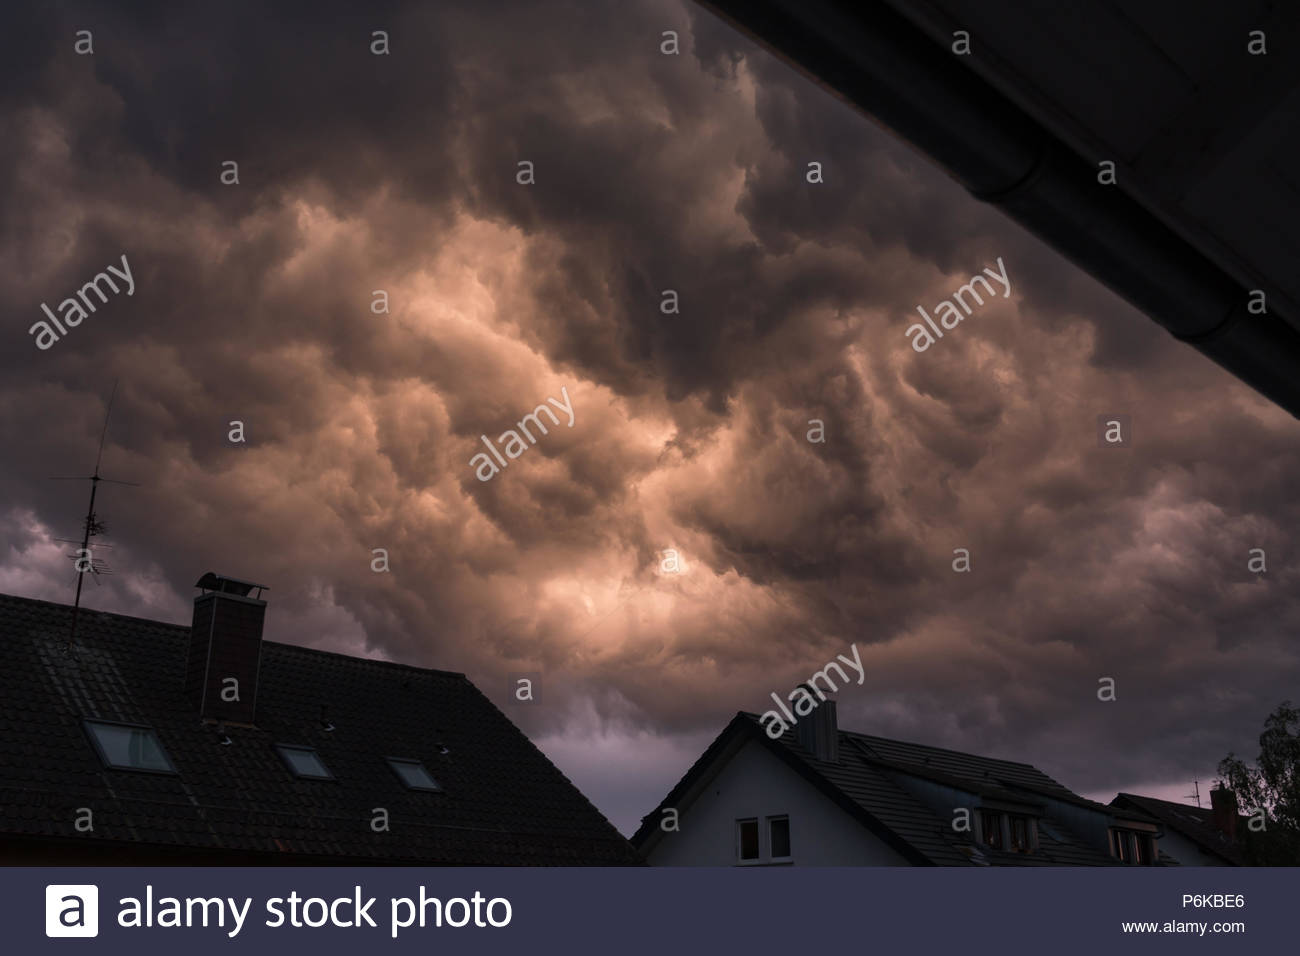 Dark impressive thunderclouds above a village showing short and strong natural spectacle during stom. - Stock Image